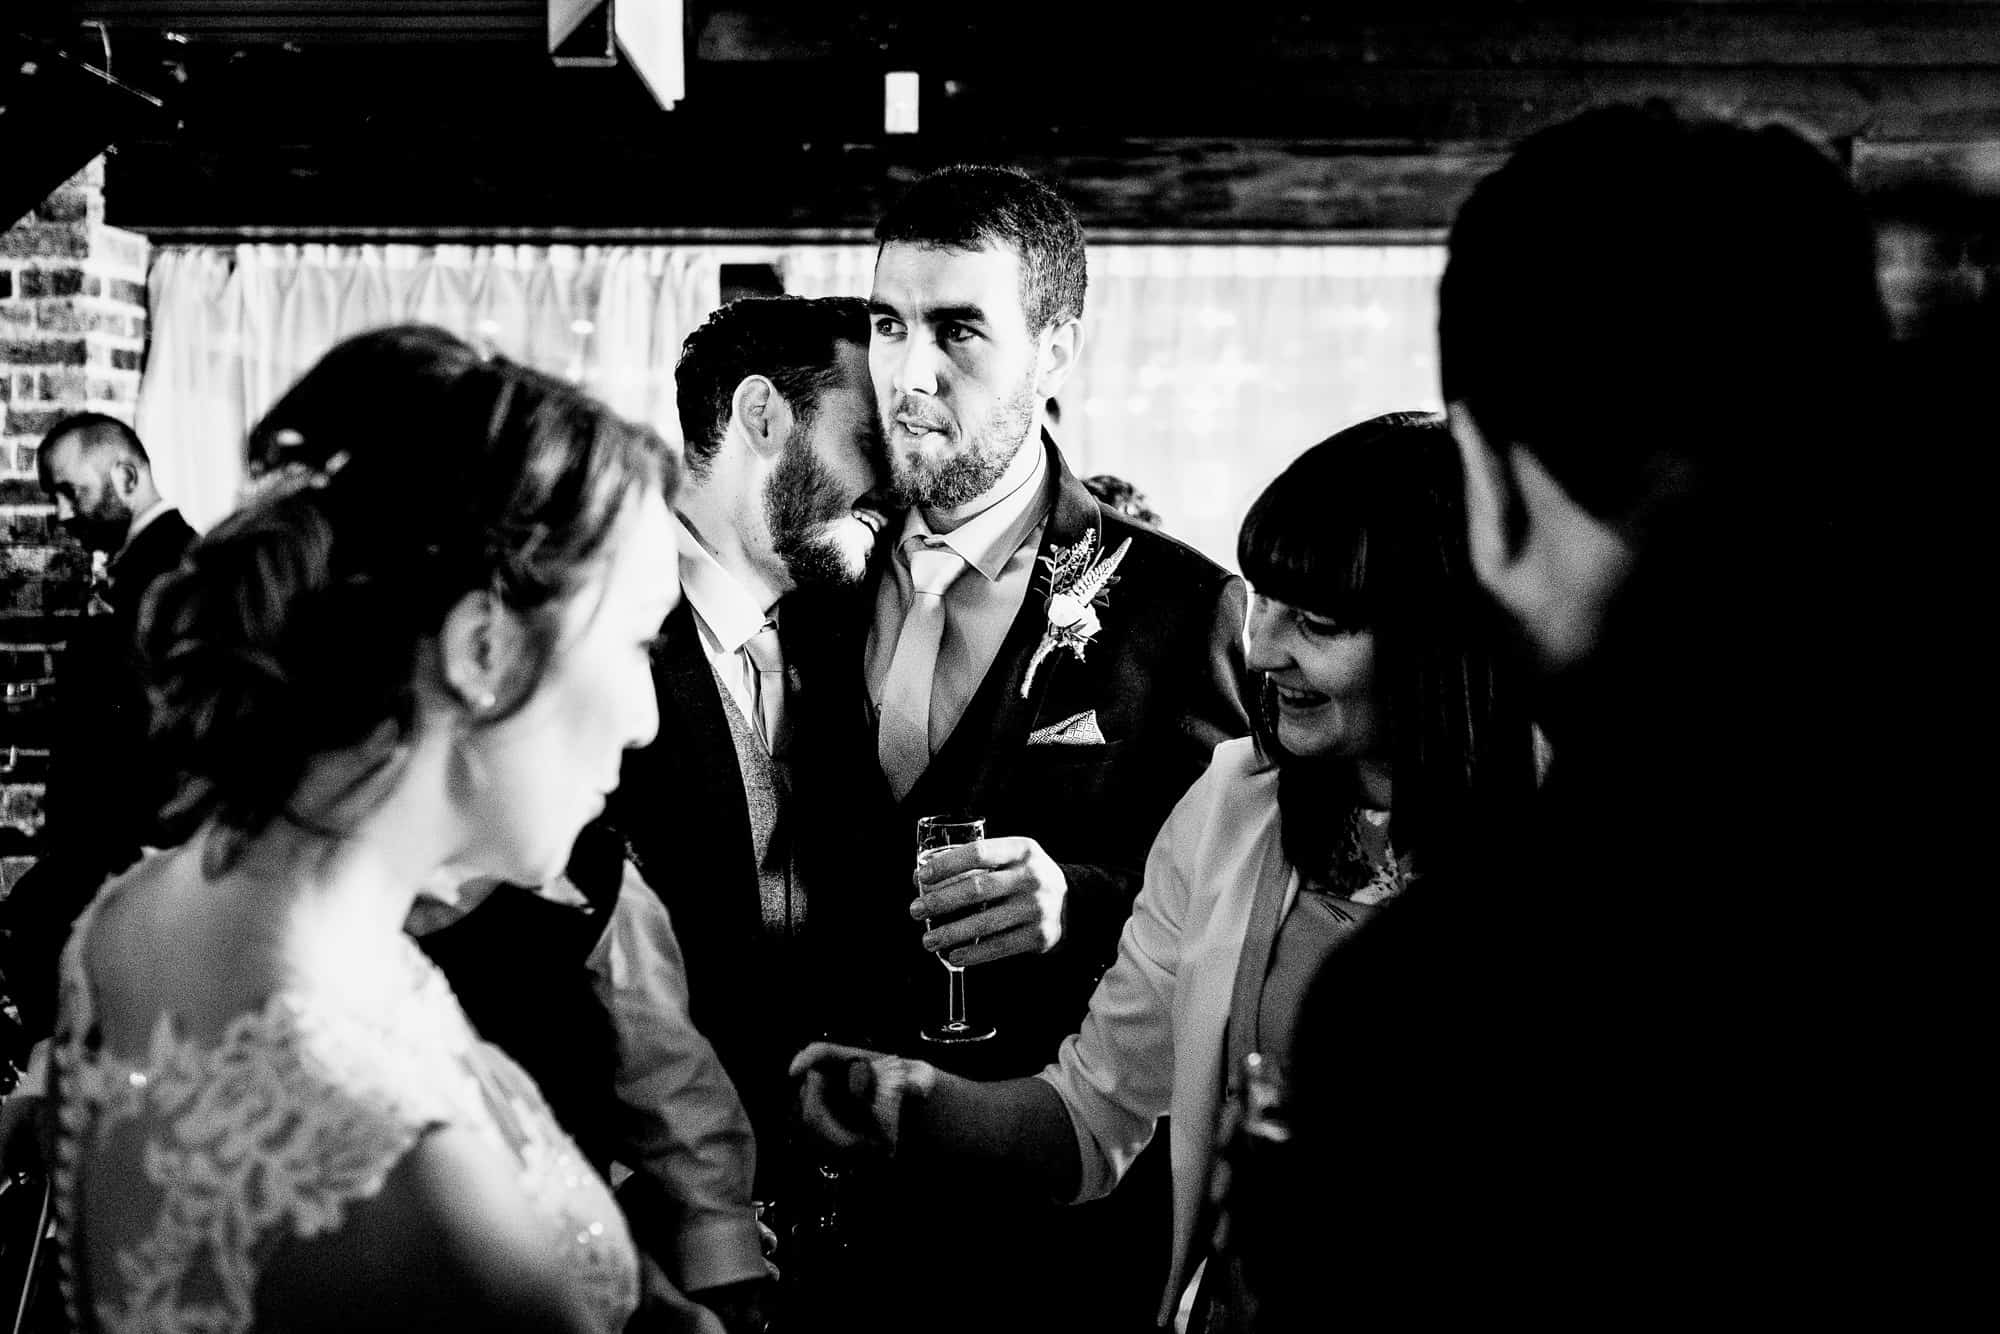 east-quay-wedding-photographer-matt-tyler-0030